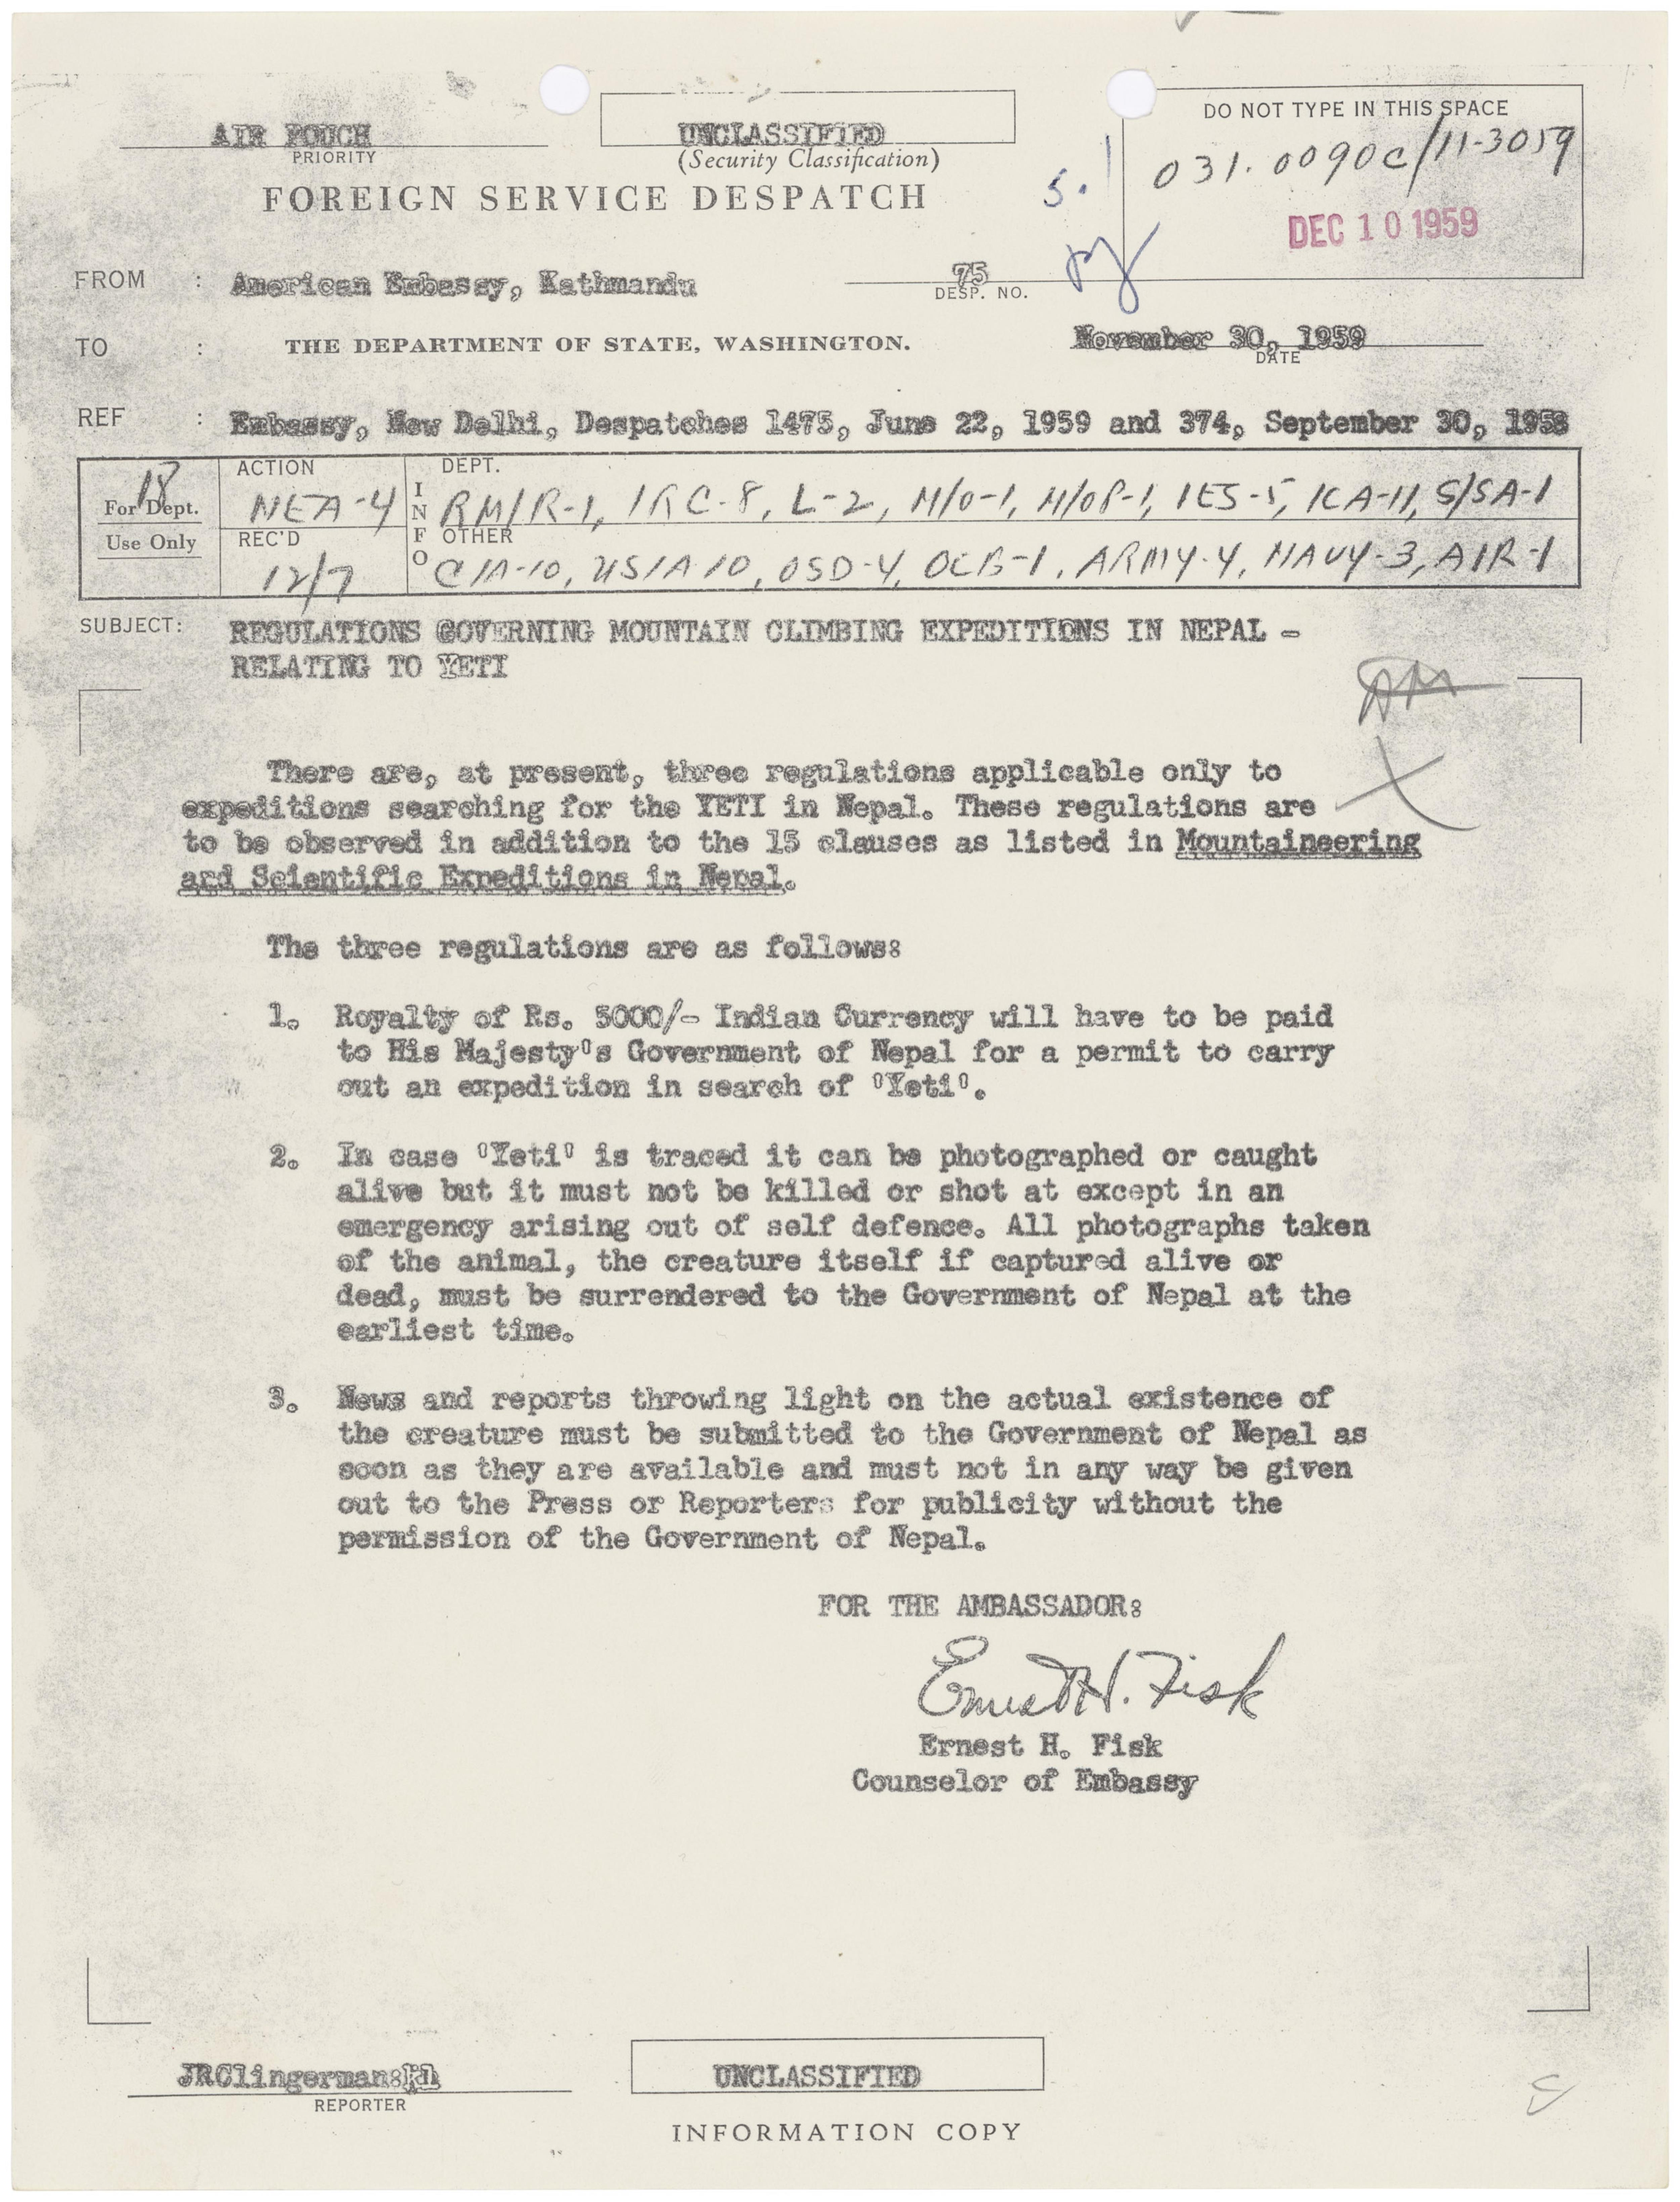 Regulations Governing Mountain Climbing Expeditions in Nepal-relating to Yeti, November 30, 1959